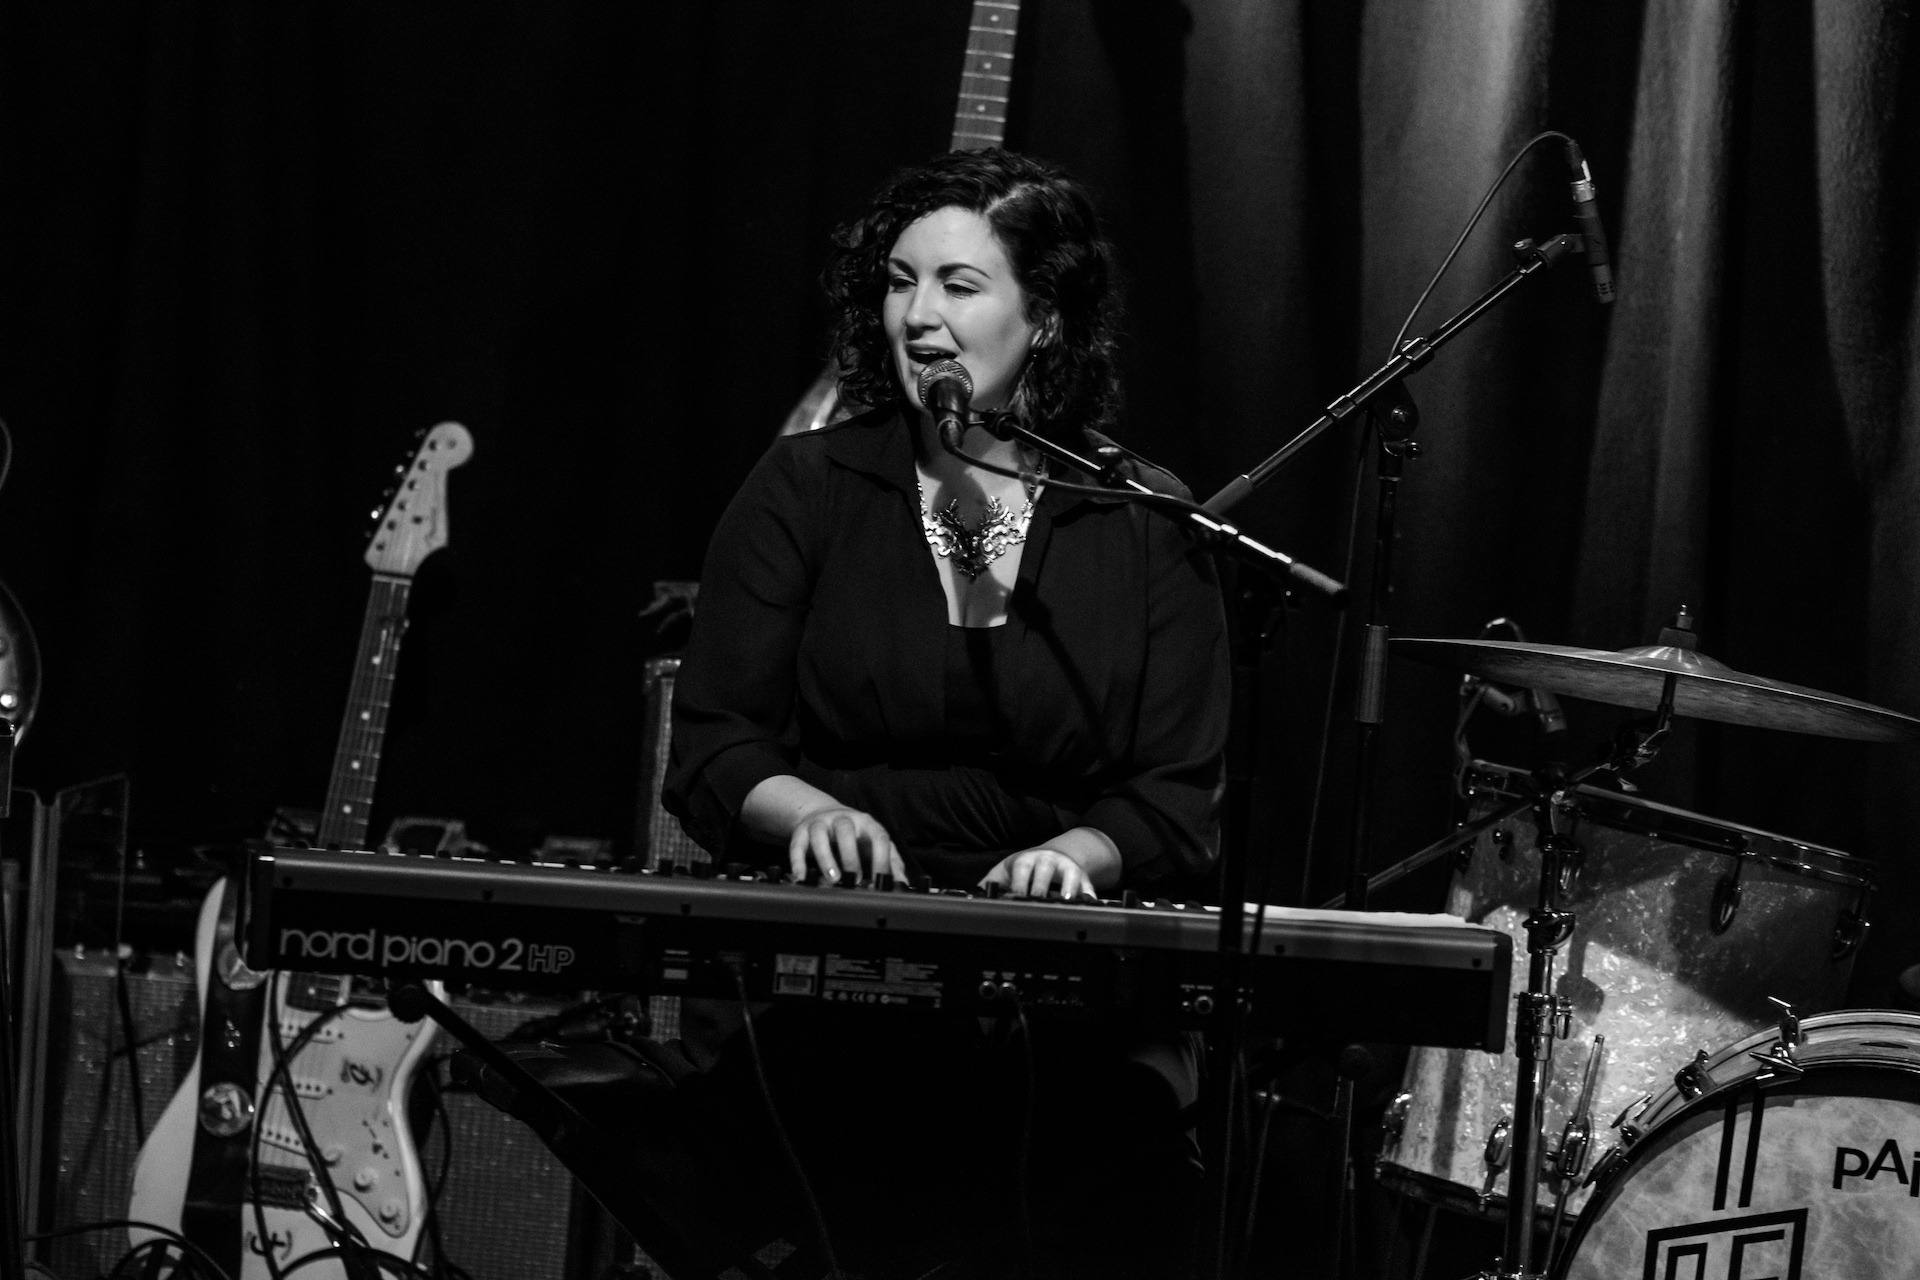 SRF 2016 - Anna Mitchell, Nord stage piano, Static Roots Festival 2016